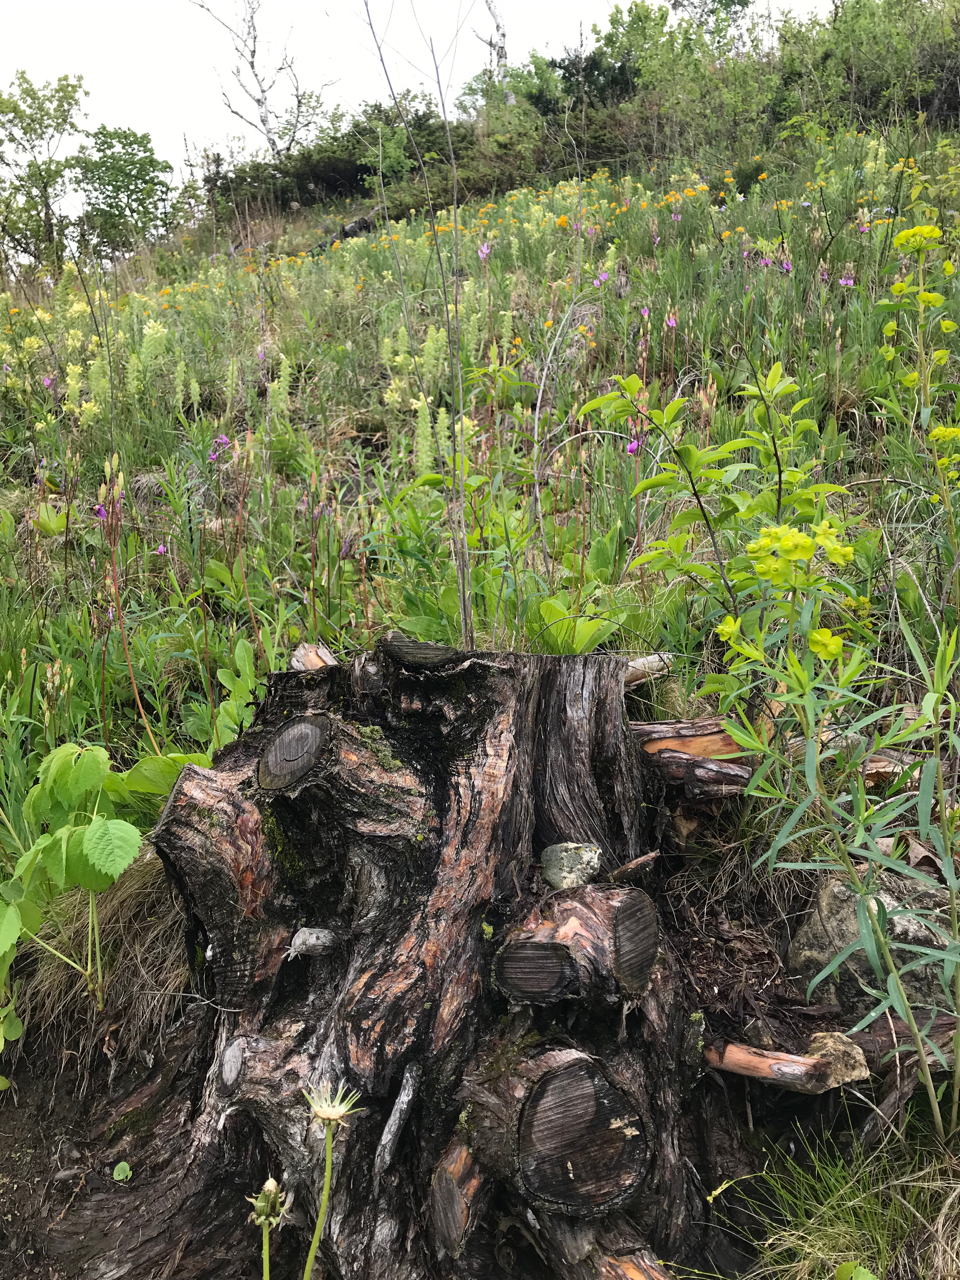 A blackened stump is surrounded by fresh growth on a hillside.